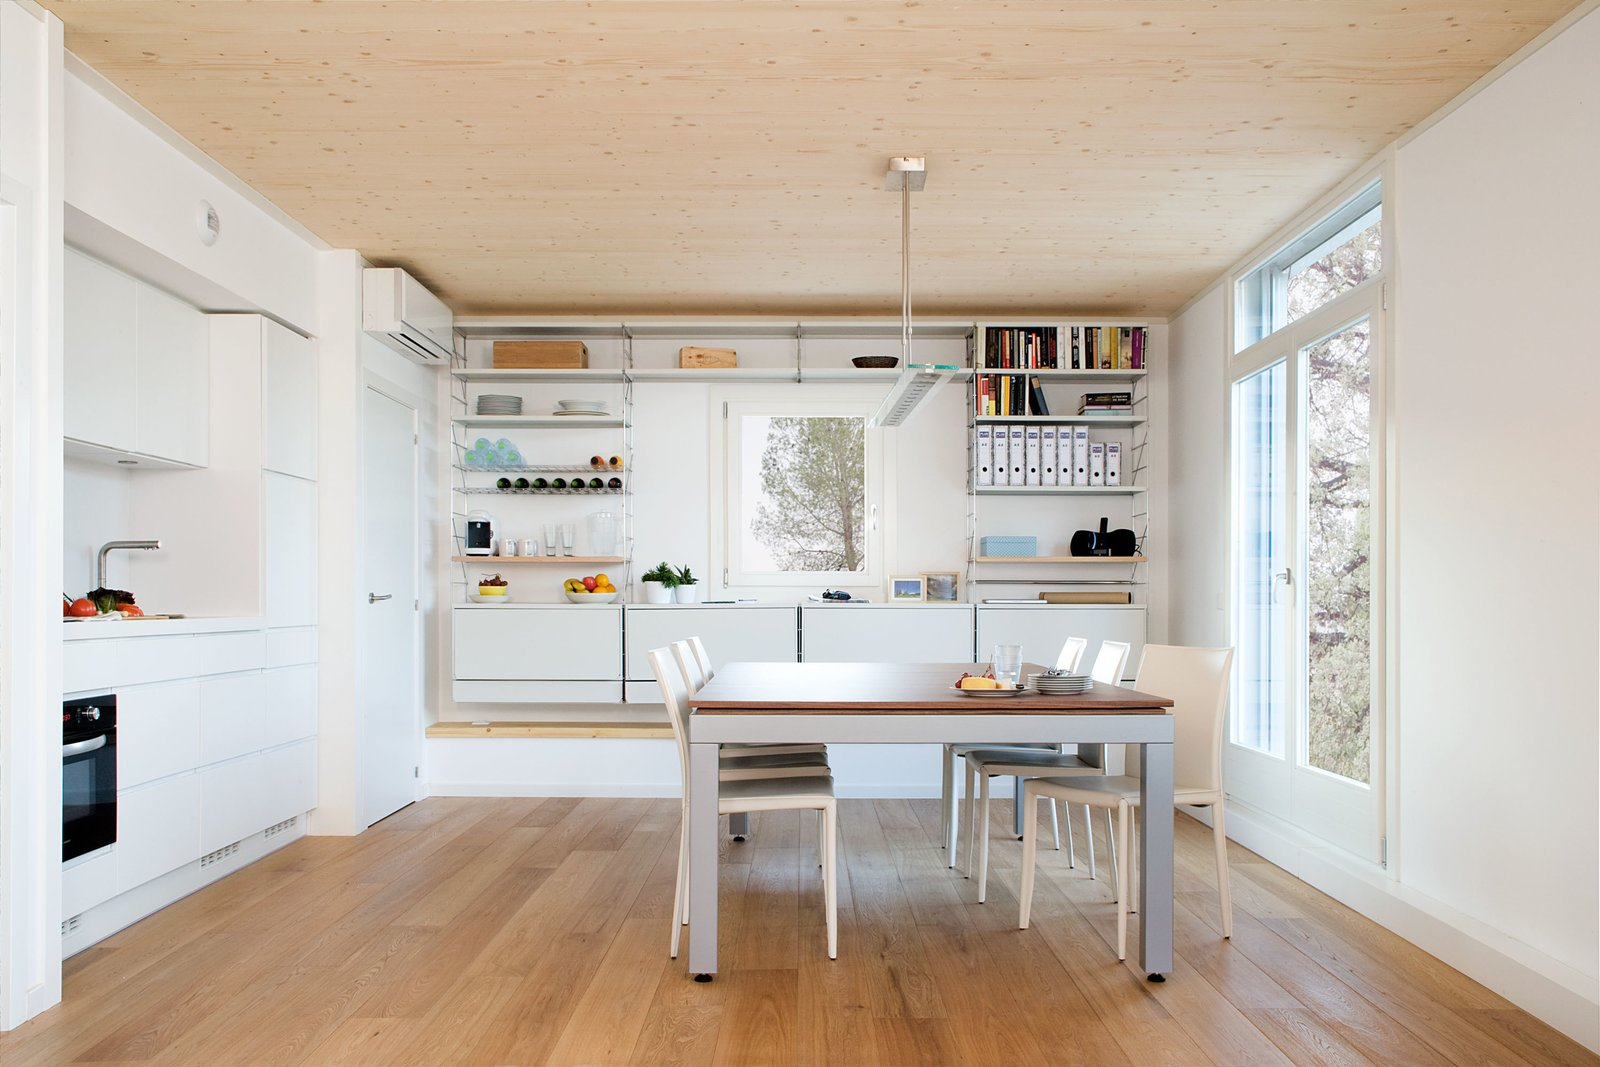 """Inside the home, soft oak flooring and the immaculate white walls and furniture """"maximize the sensation of light,"""" Martín says.  Photo 3 of 7 in Plugged-In Prefab Collects Weather Data to Conserve Energy"""